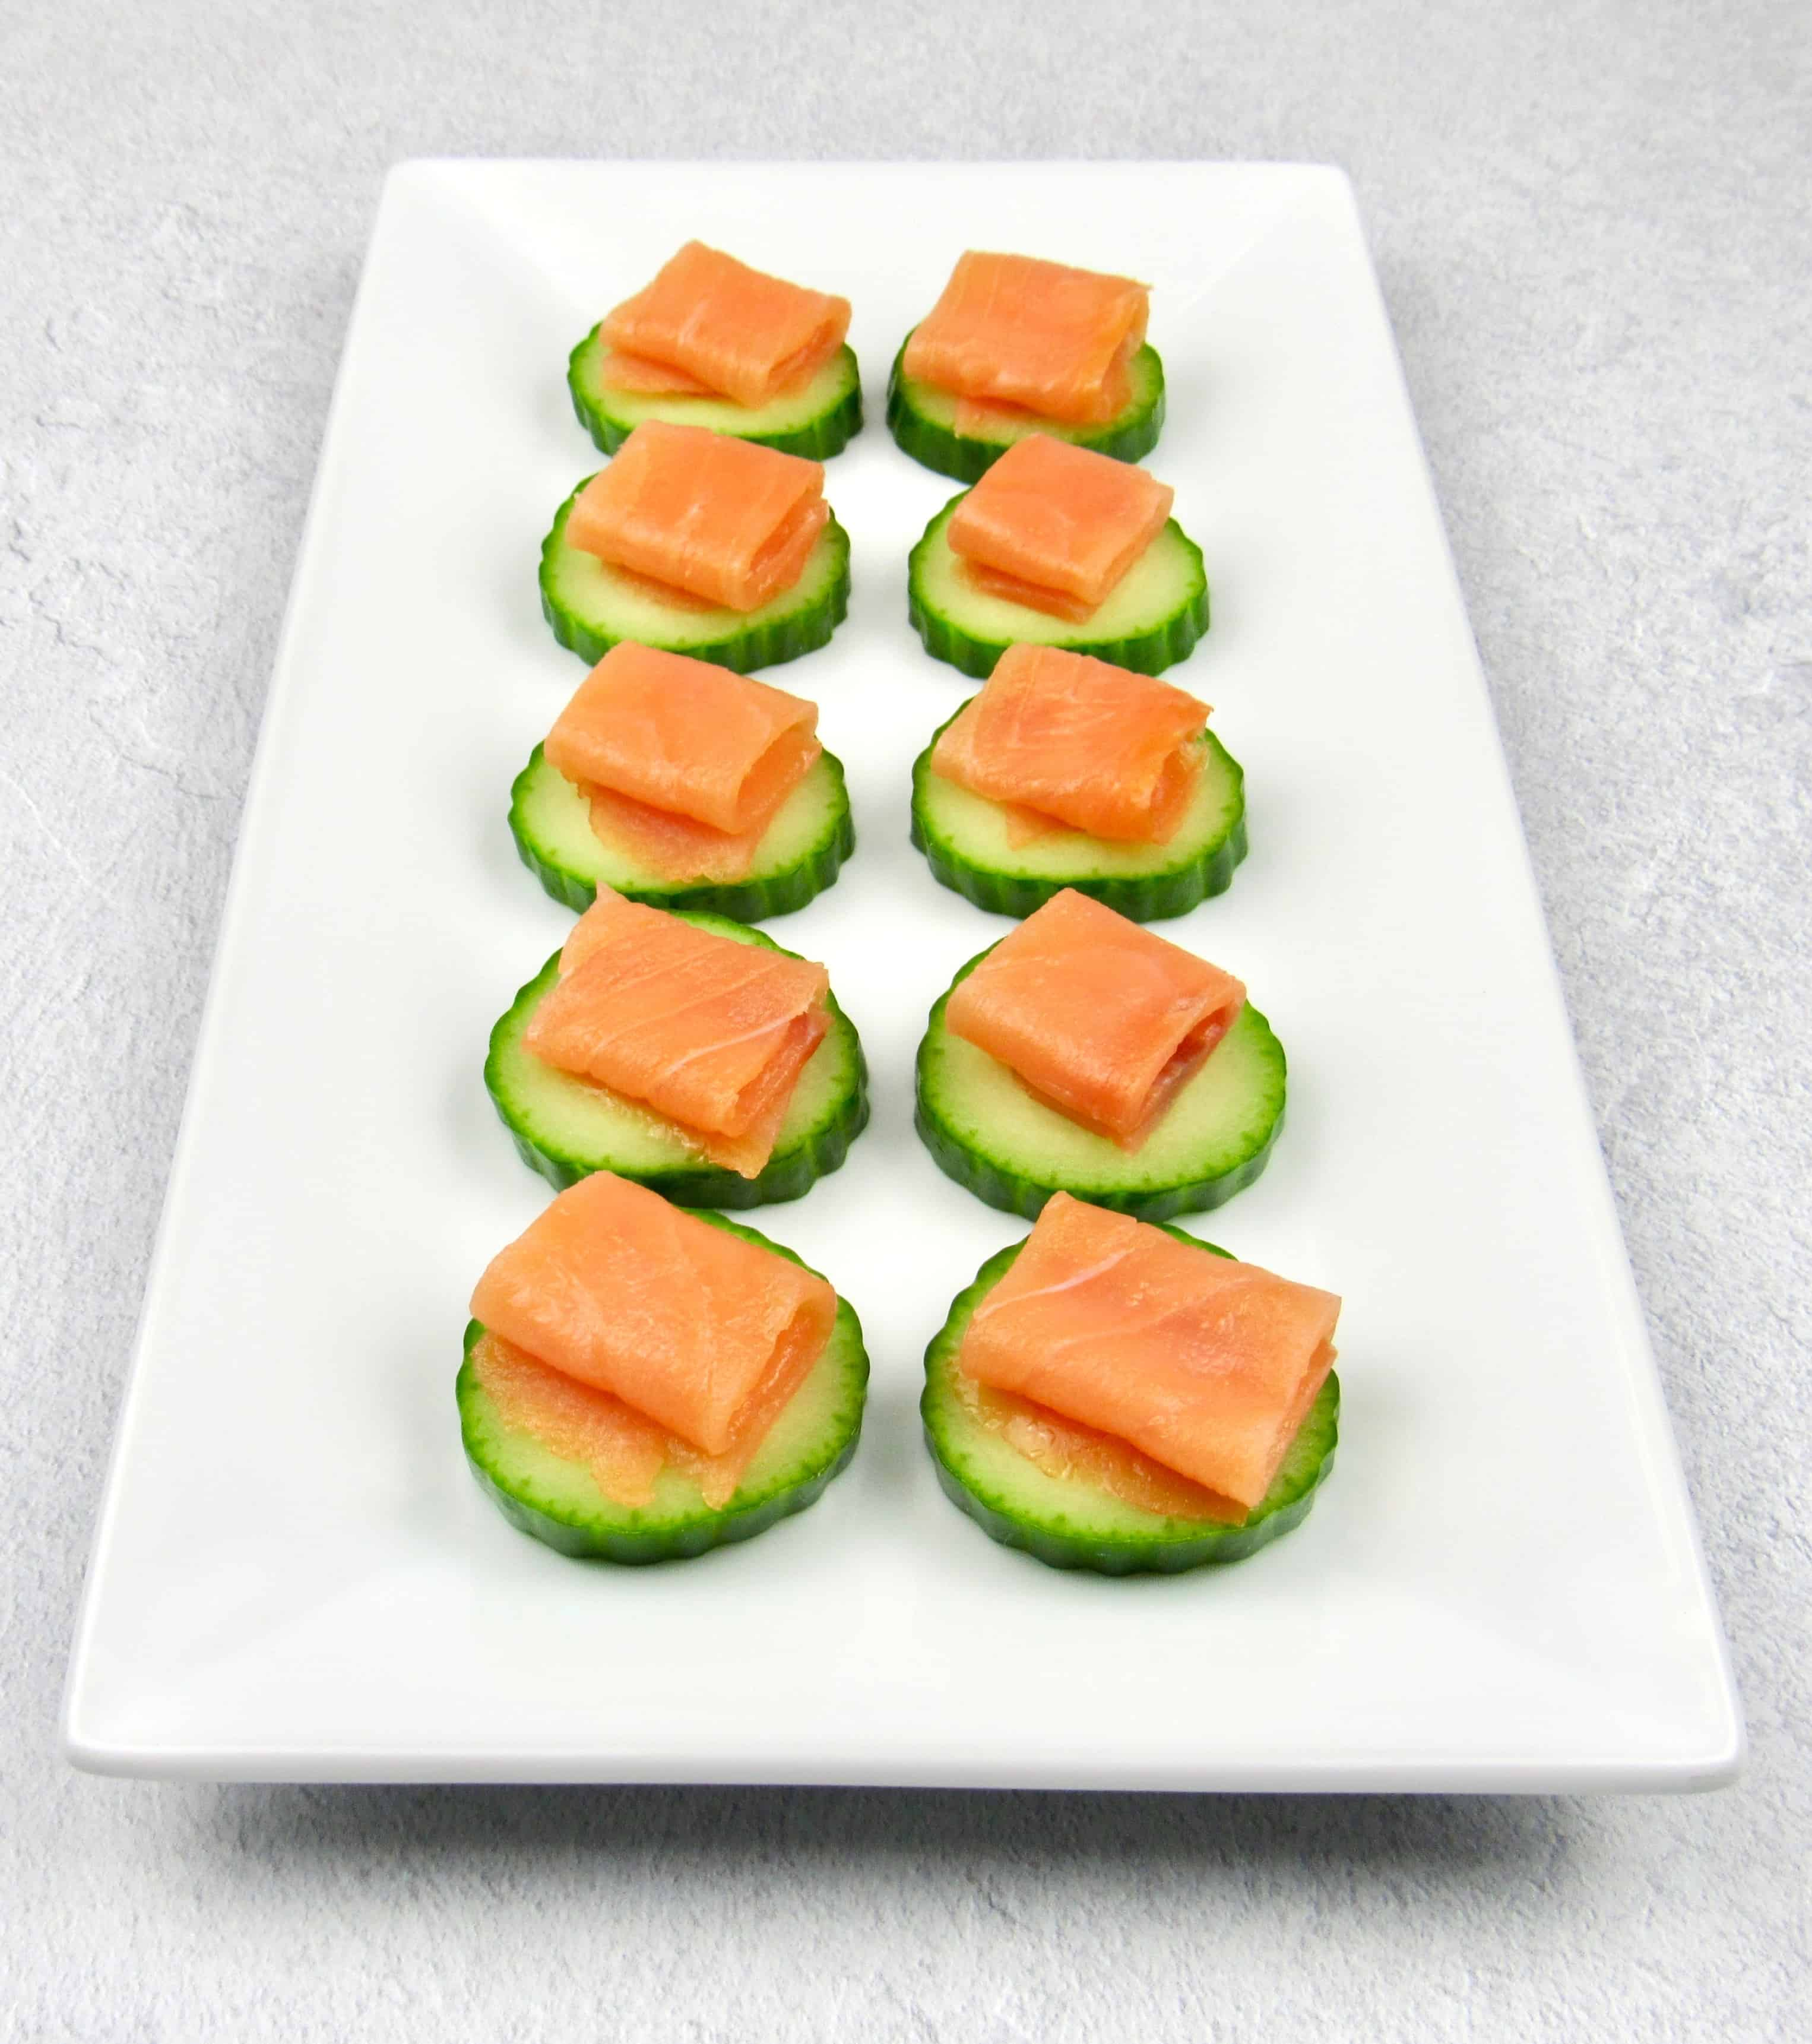 overhead view of smoked salmon cucumber bites on white plate